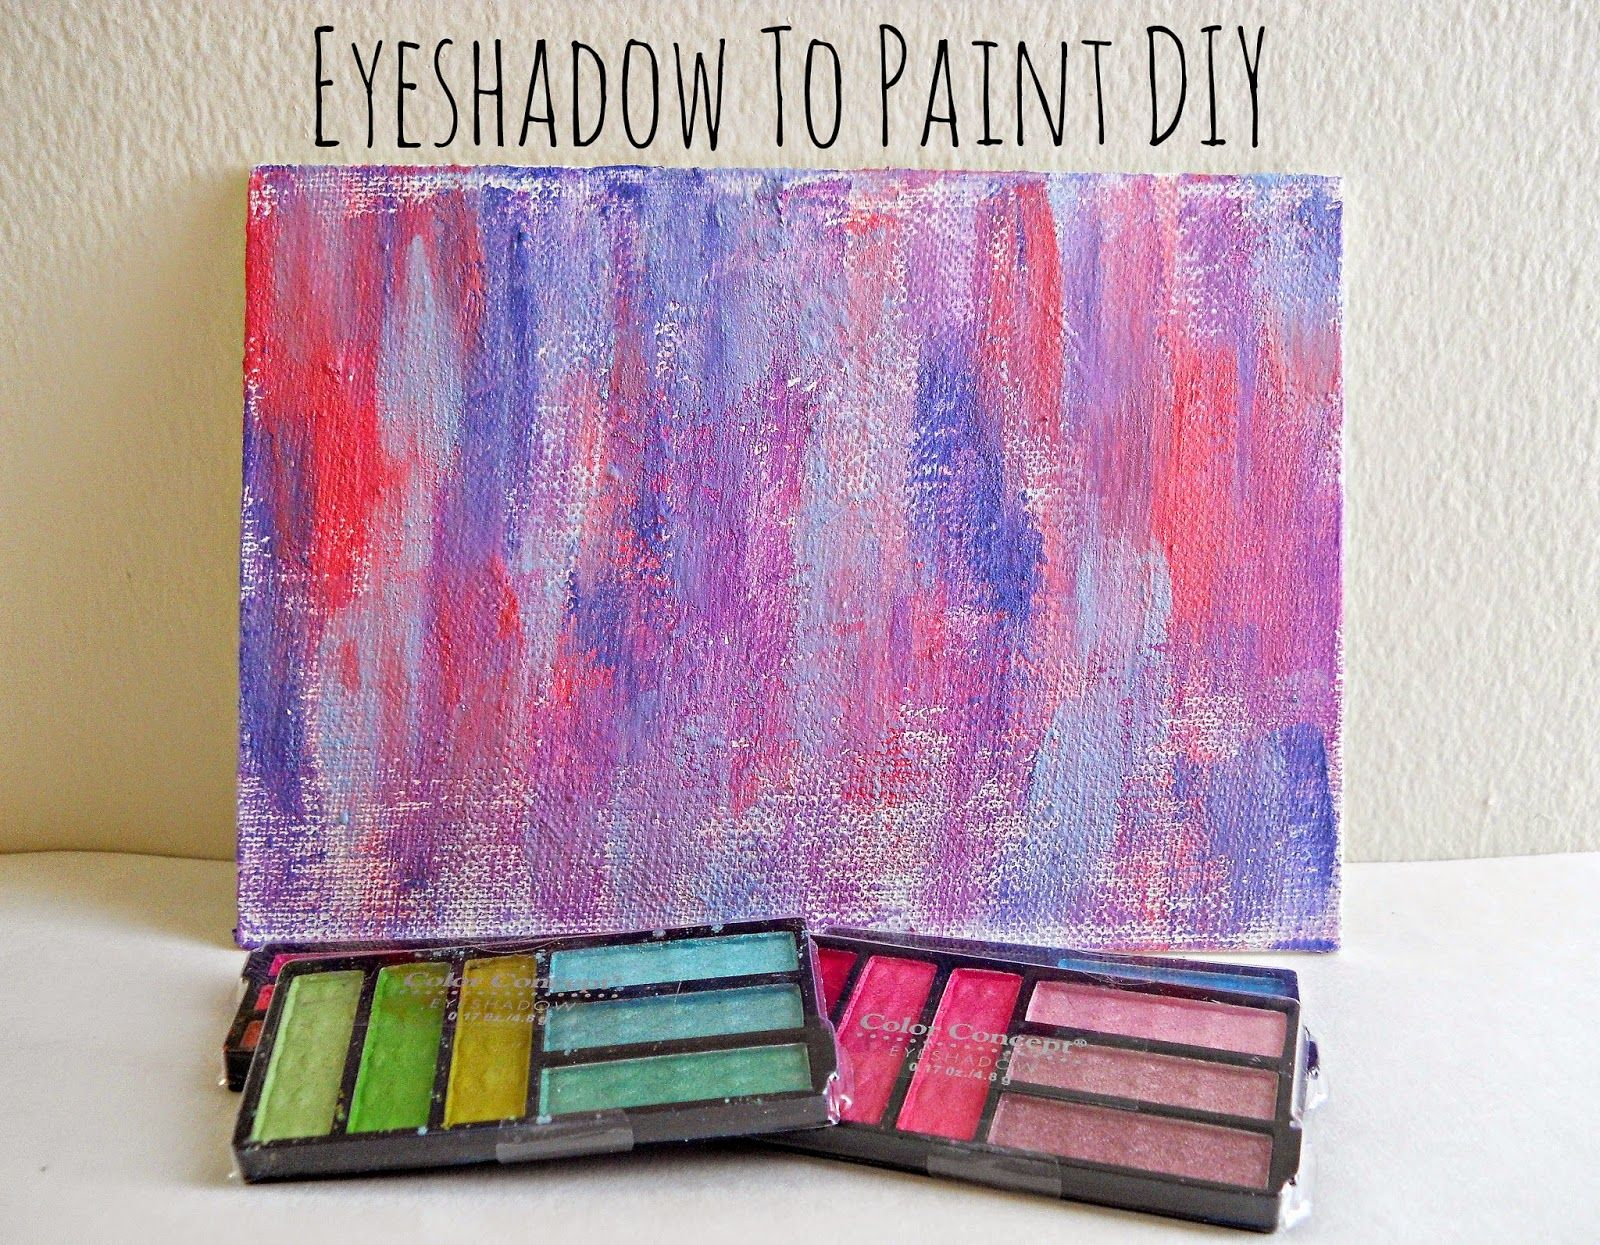 Eyeshadow To Paint Diy Diy Crafts Makeup Makeup Crafts Diy